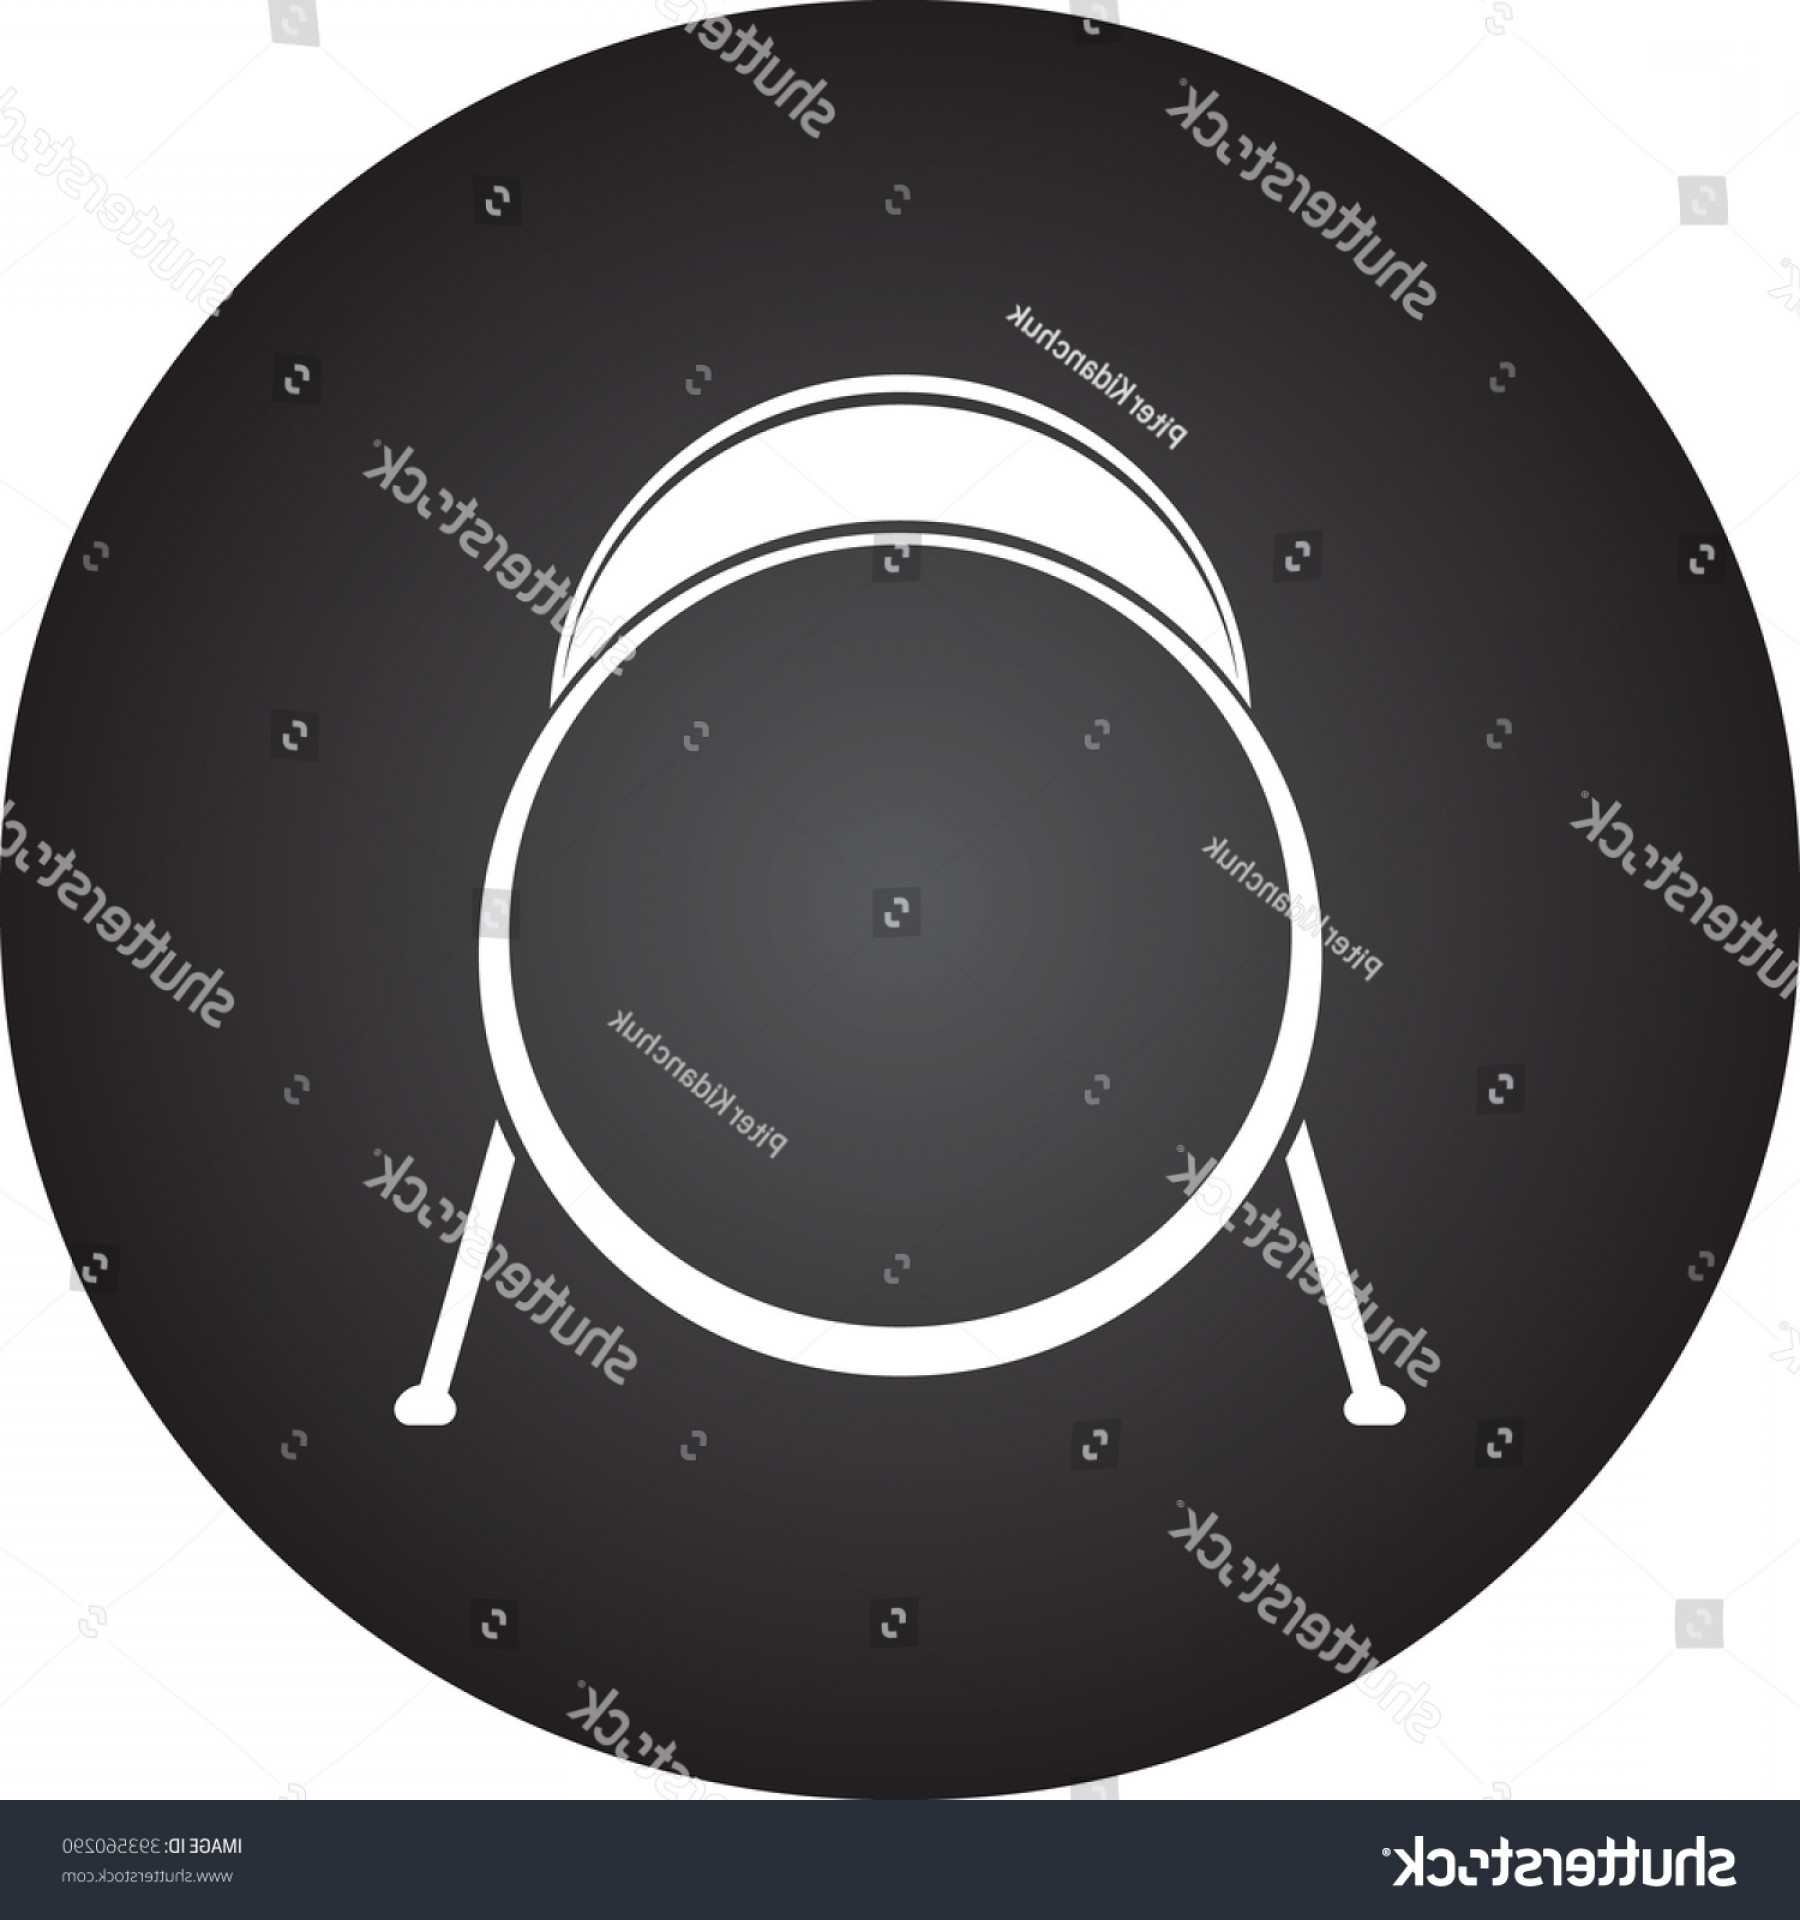 Kick Drum Vector: Kick Drum Simple Icon On Round